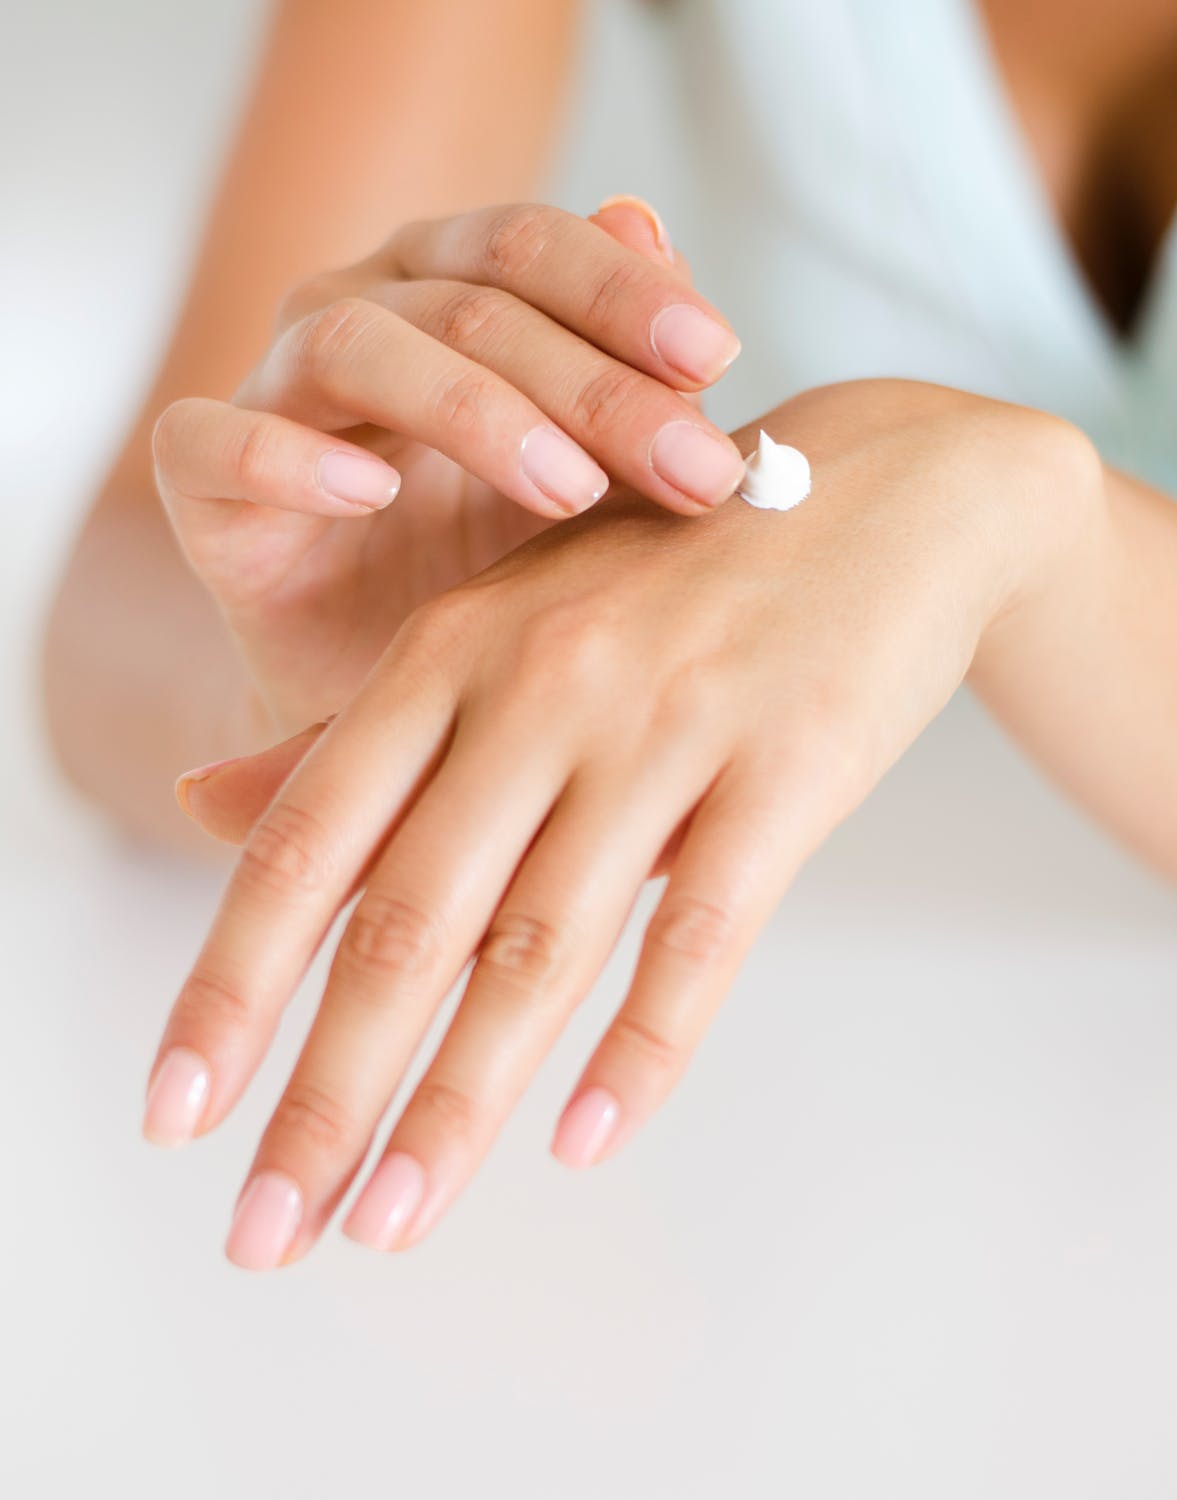 woman applying hand cream to back of hand